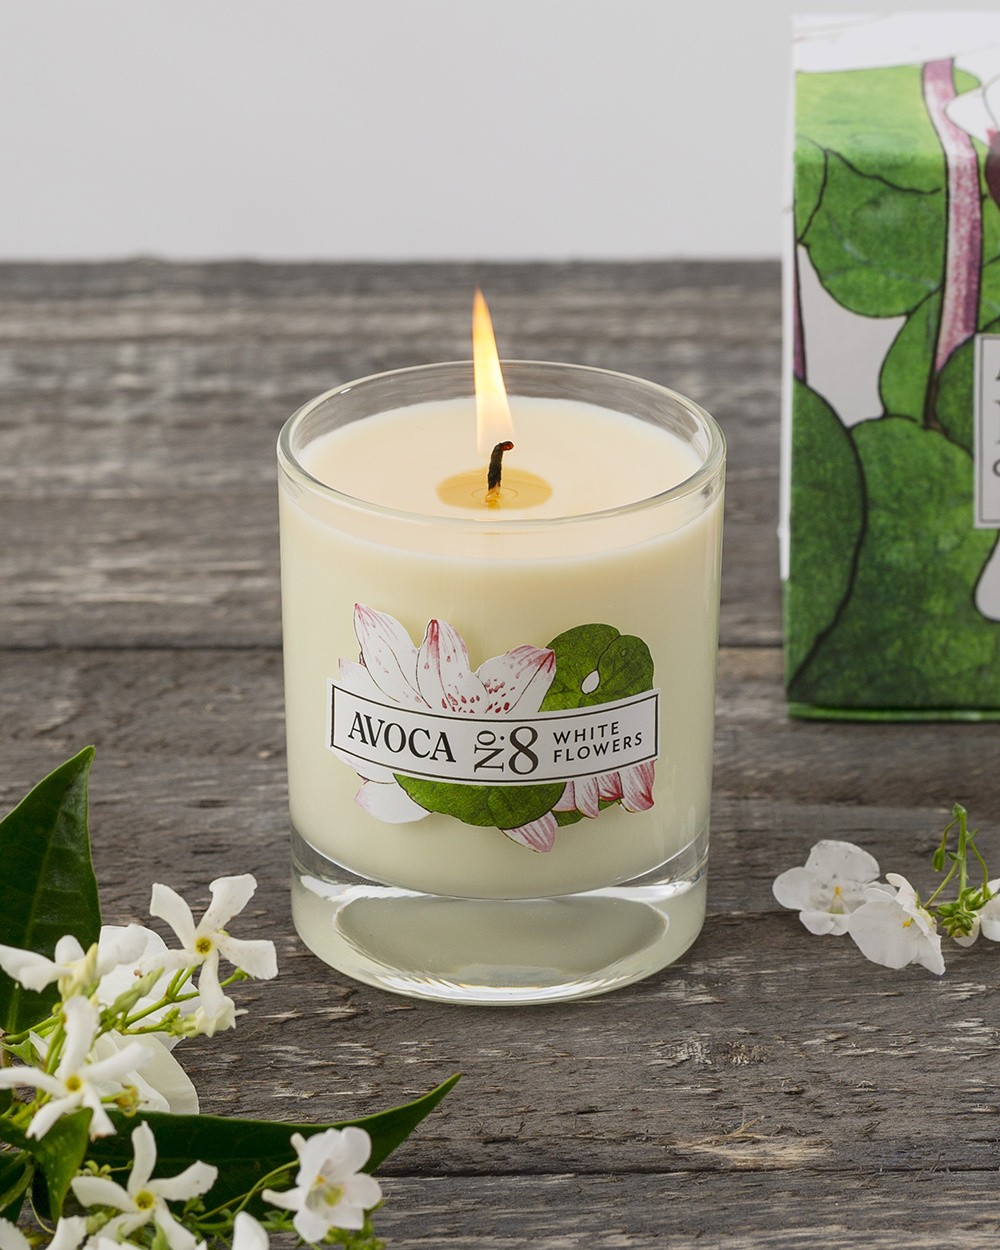 White Flowers Scented Candle Home Food Avoca